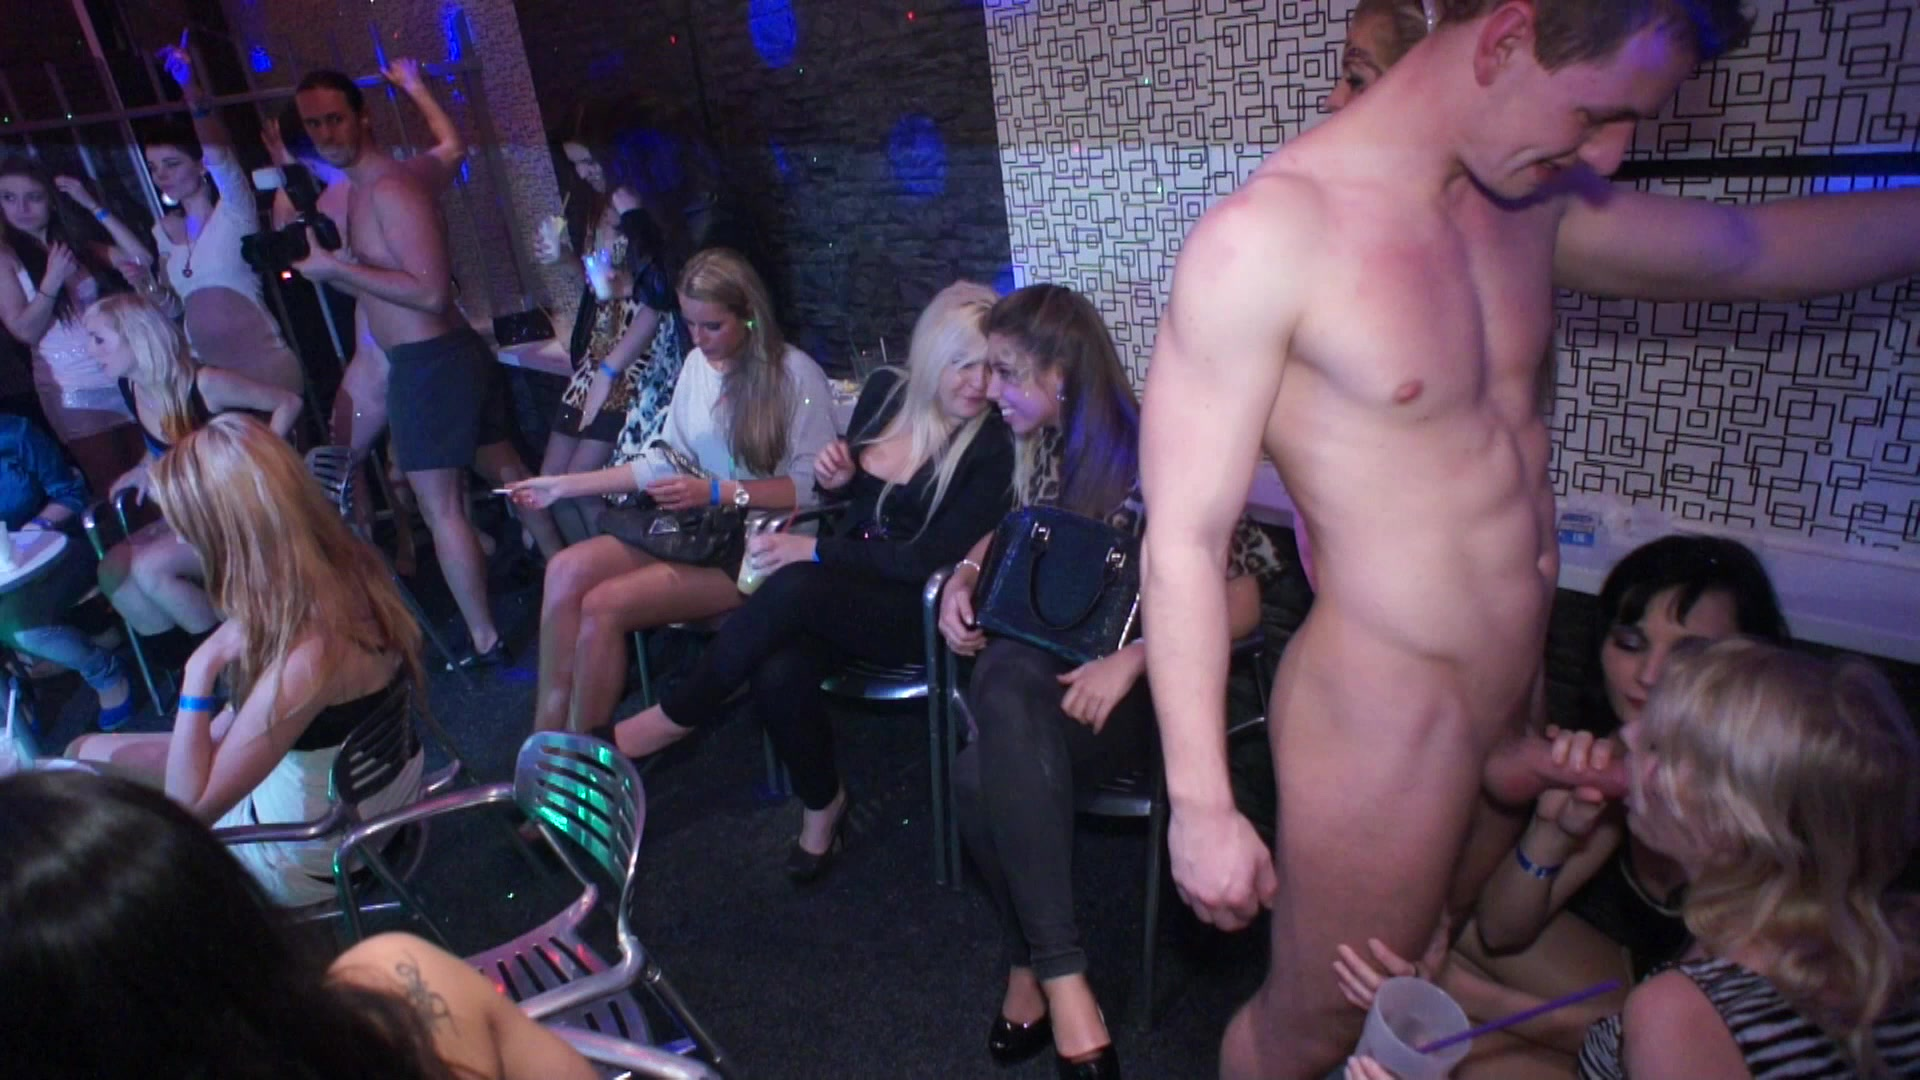 Virgin threesome party 7 2014 - 2 part 8